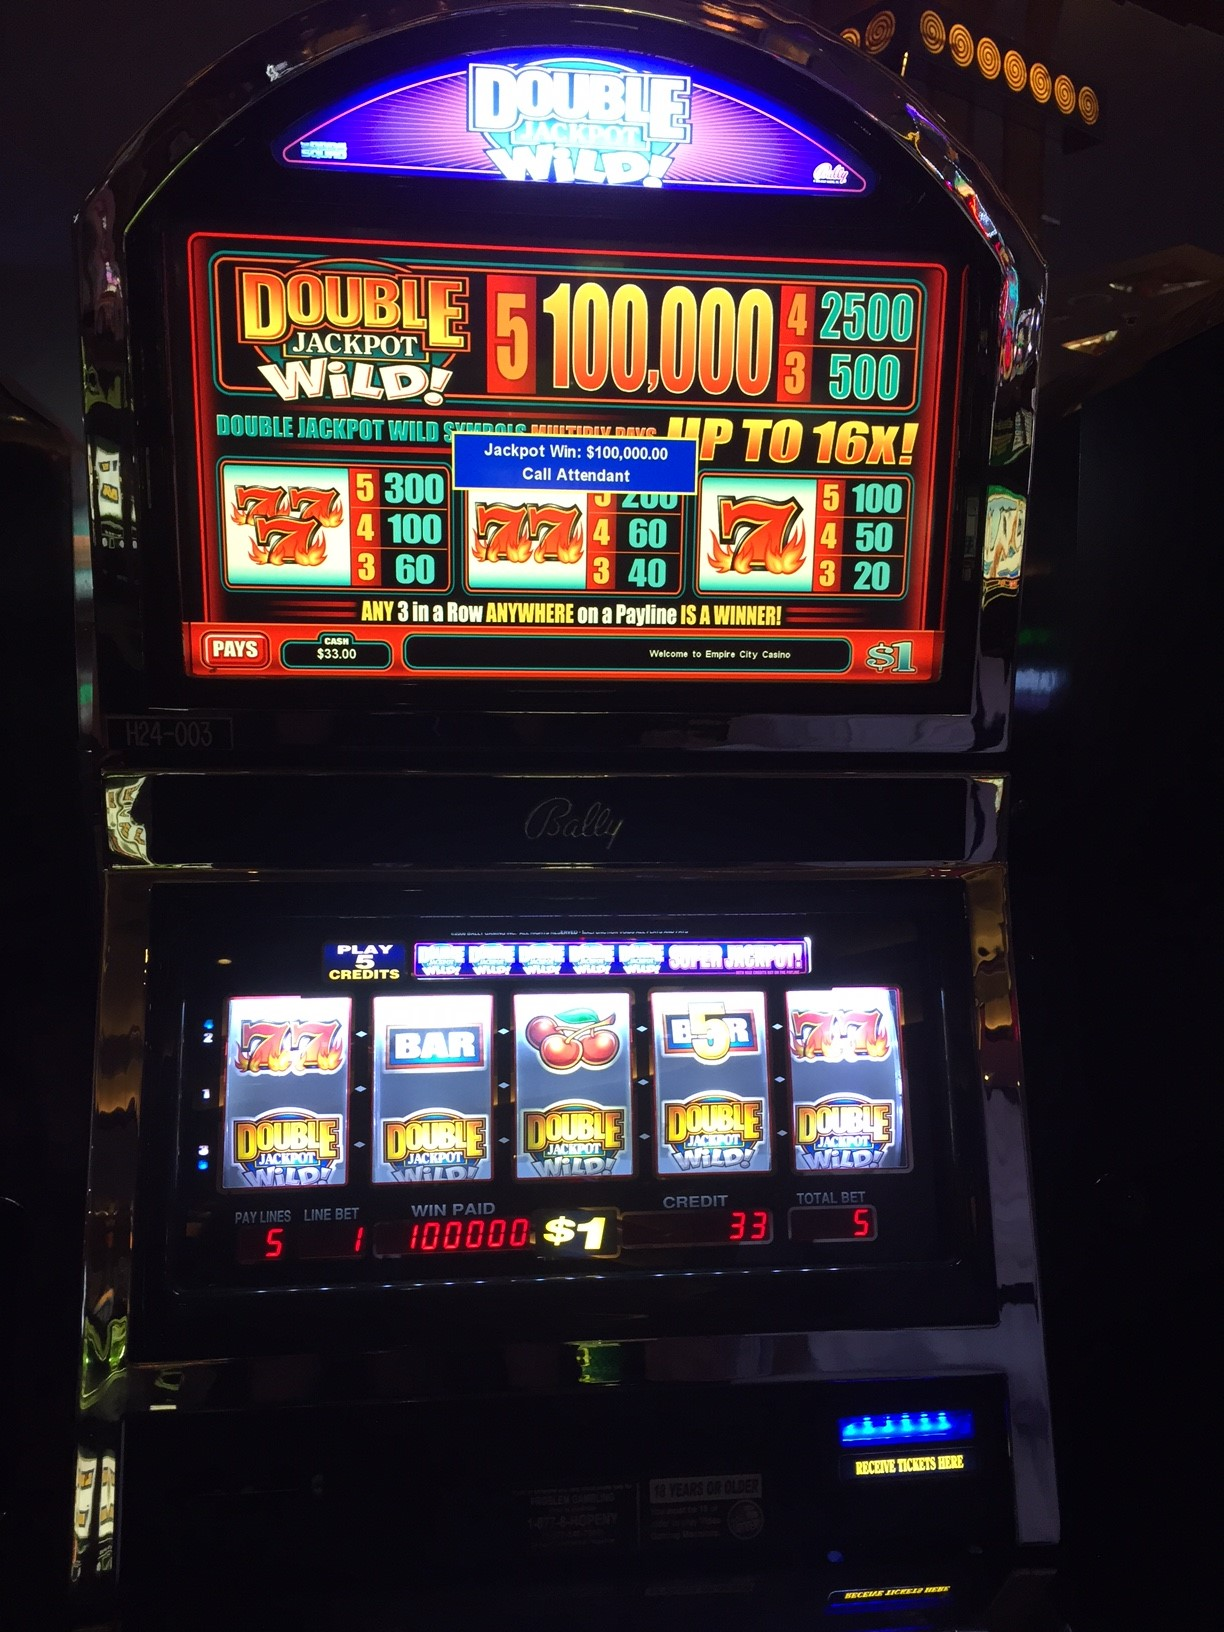 Roulette touch screen gaming machines